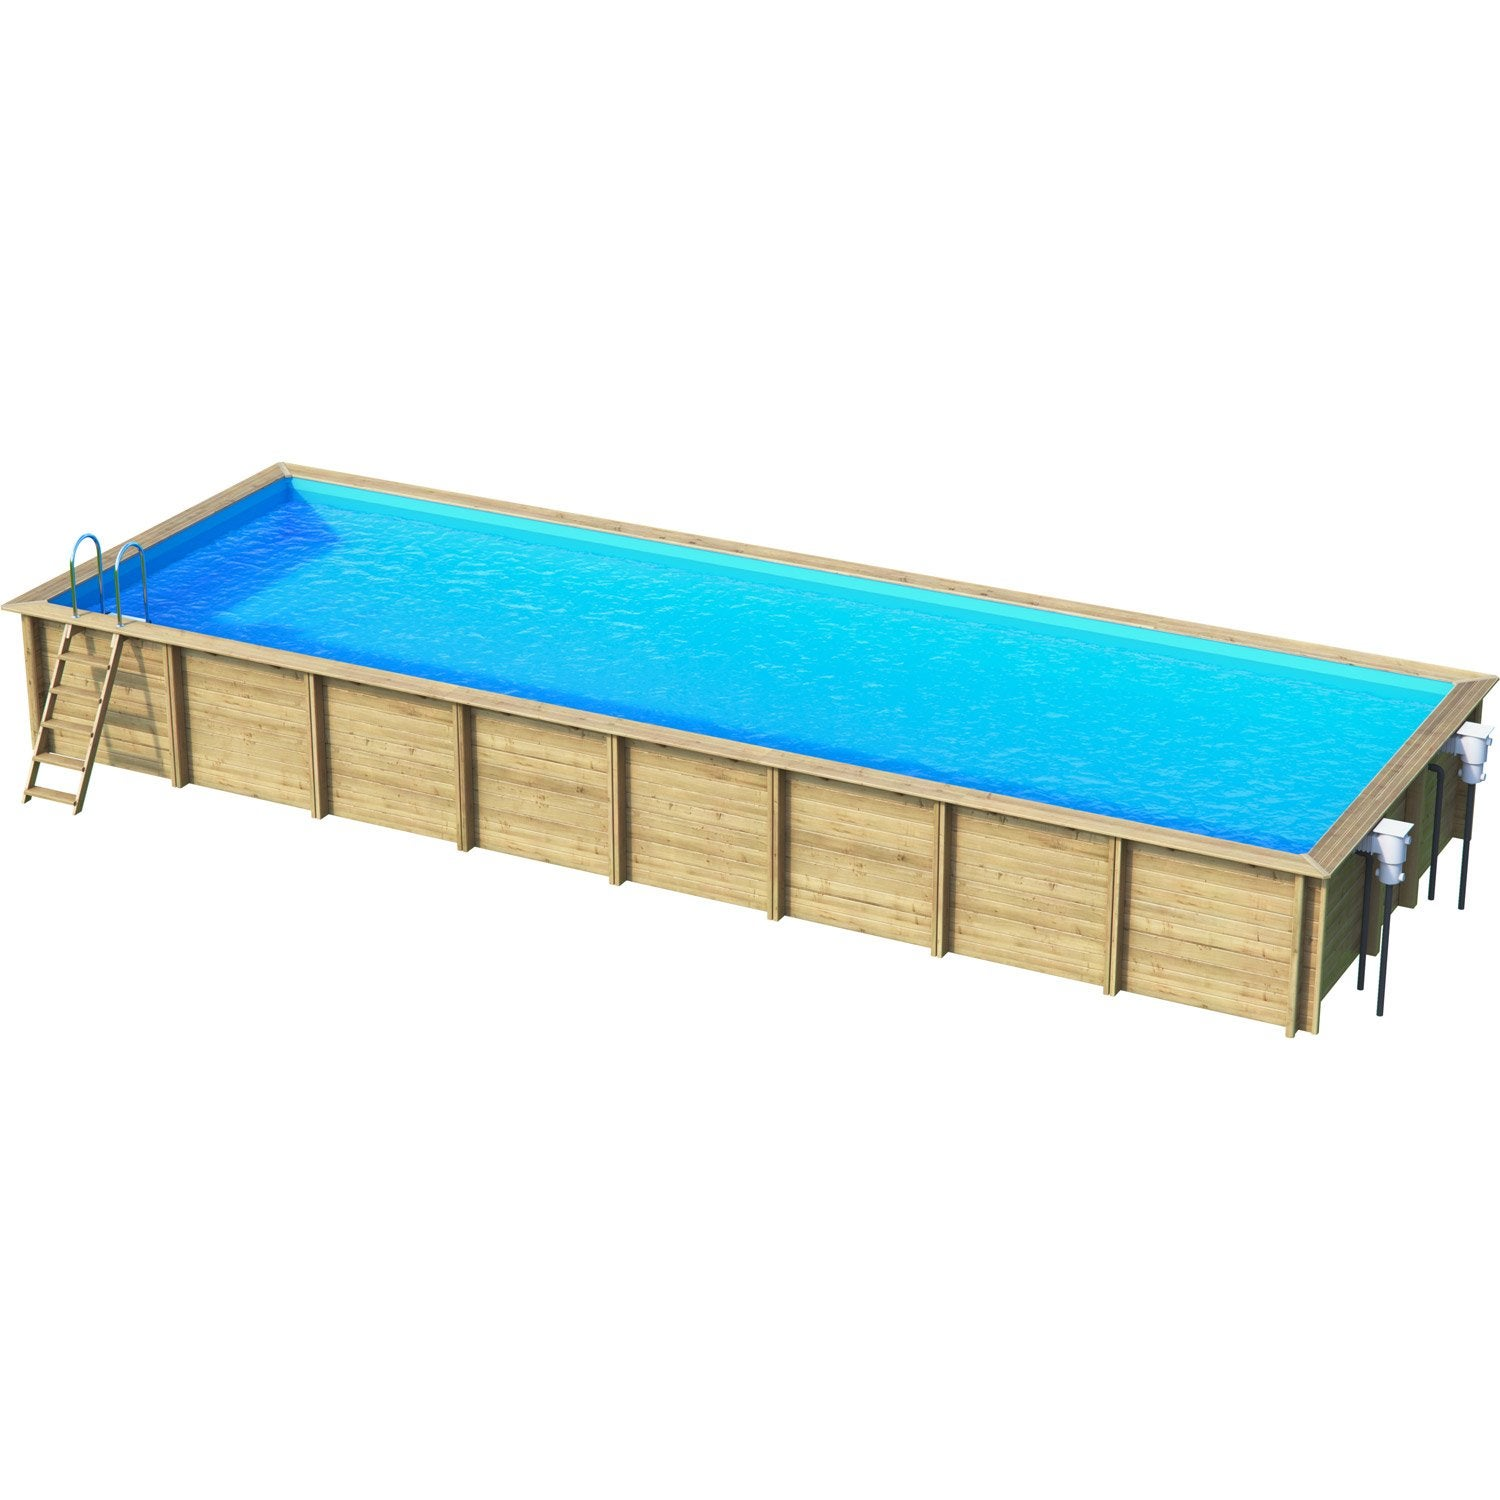 Piscine hors sol tubulaire rectangulaire leroy merlin for Piscine tubulaire leroy merlin